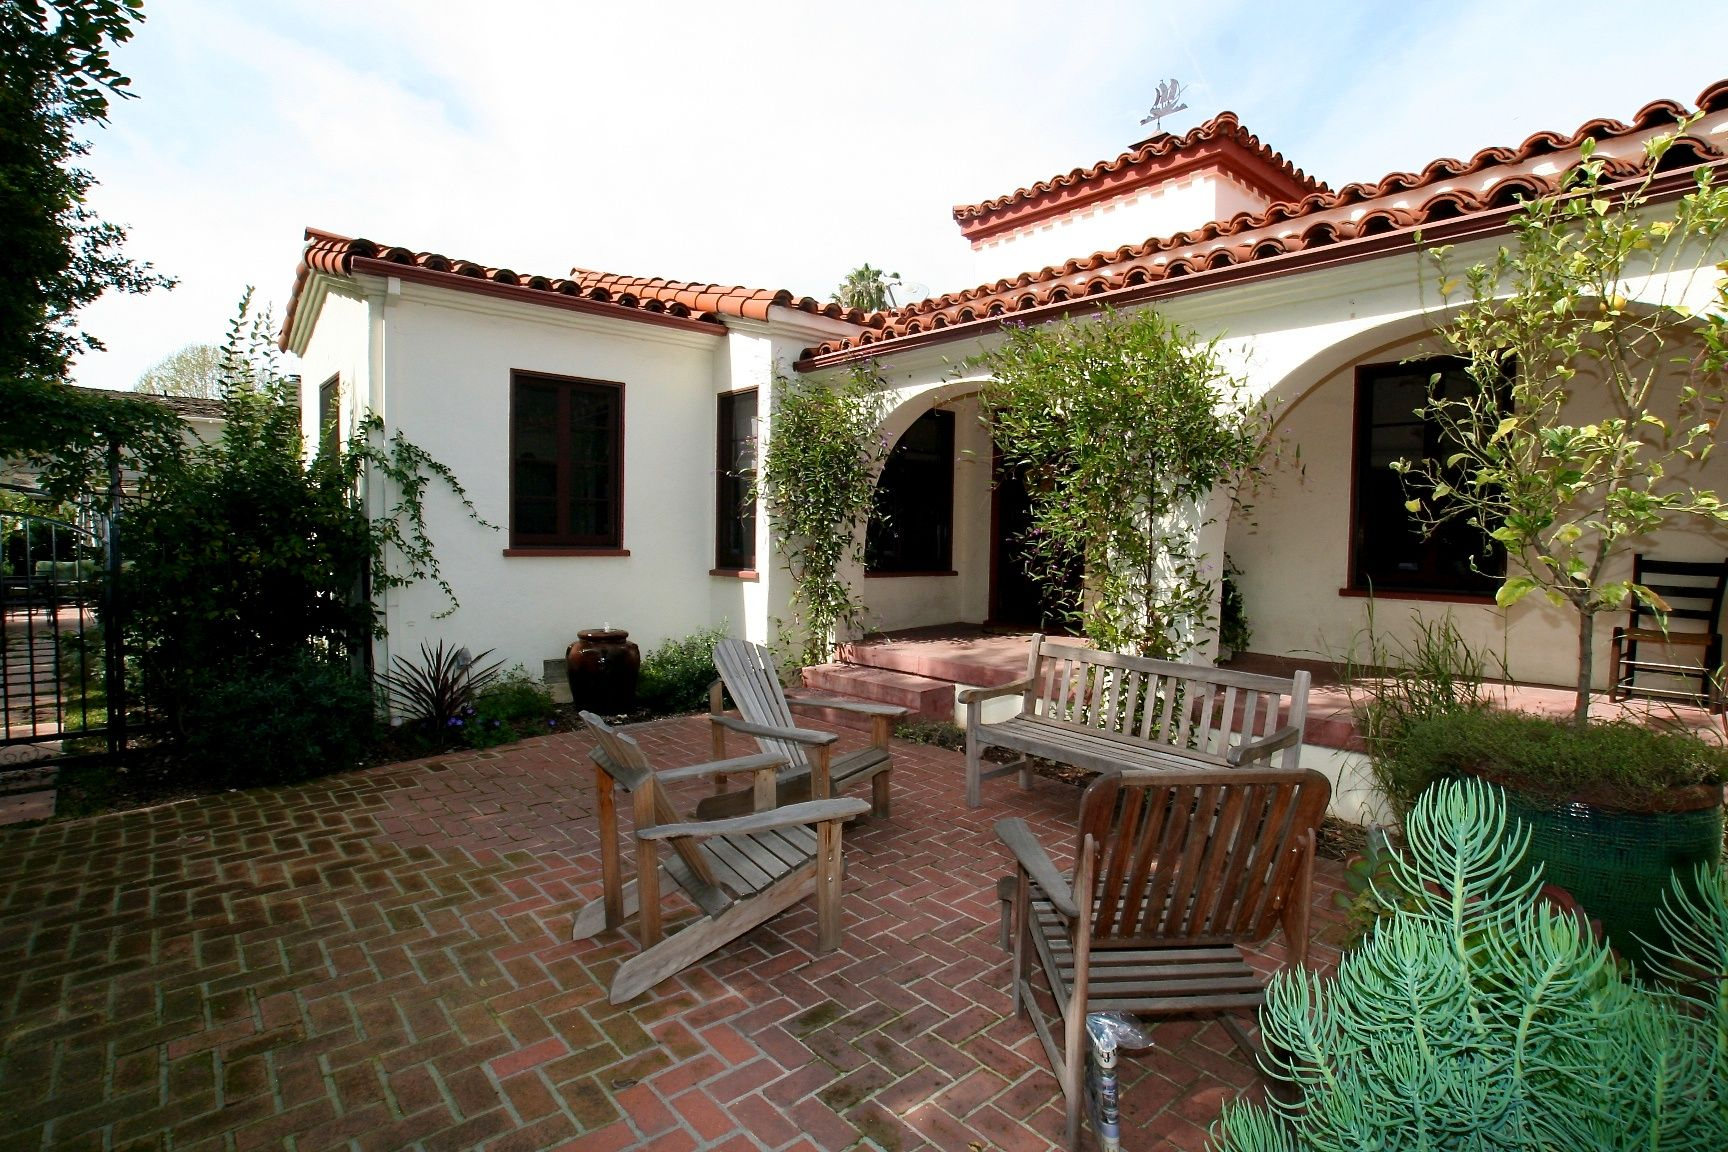 Single Story Spanish Style Homes Google Search Spanish Style Homes Spanish Style Hacienda Style